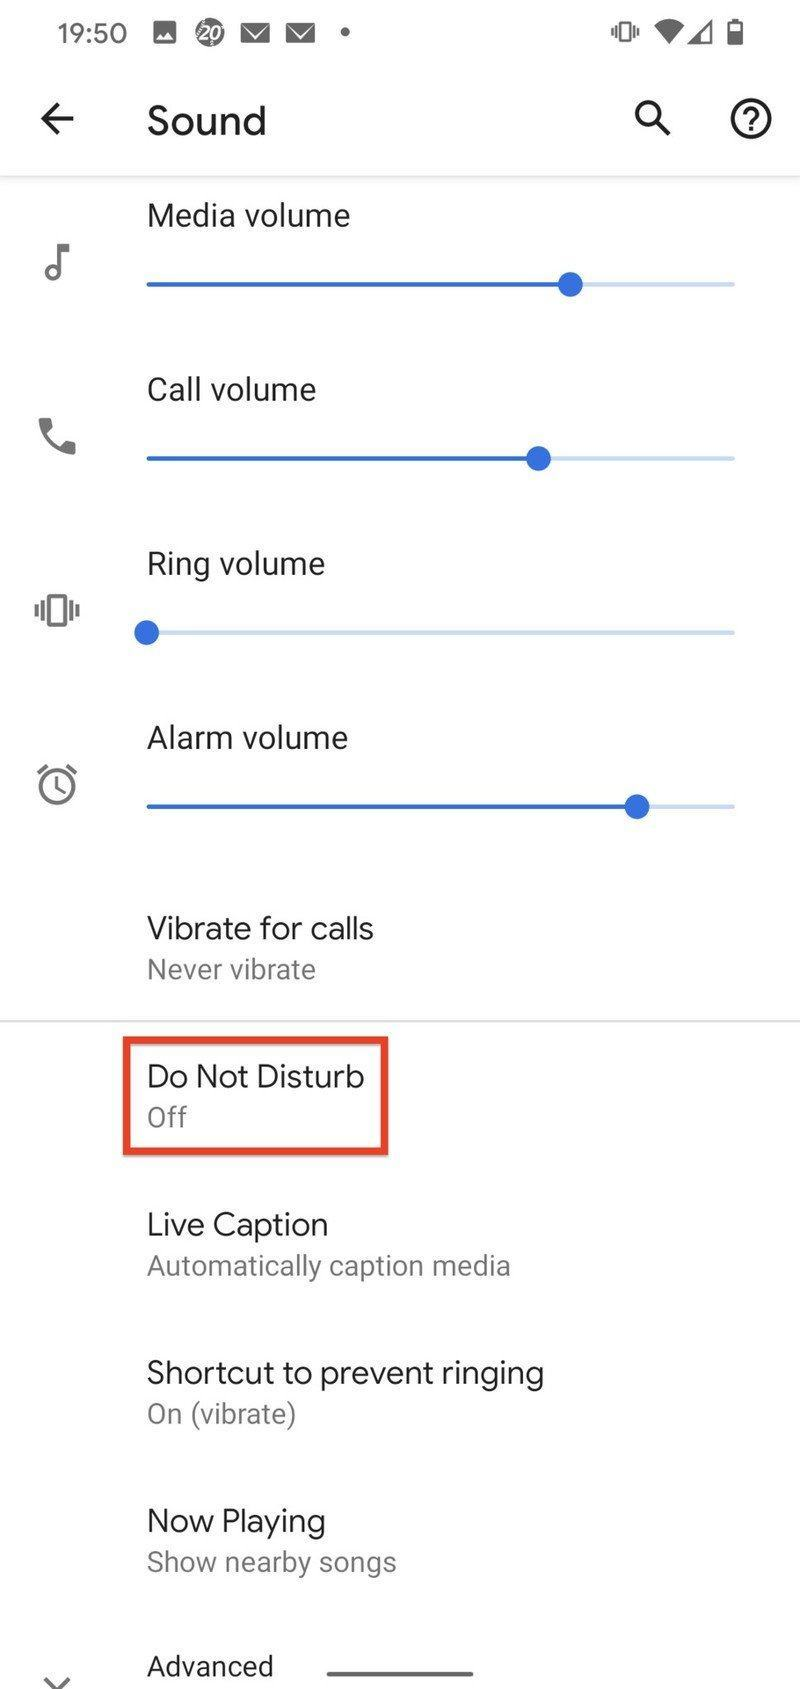 Do Not Disturb In Sound Settings